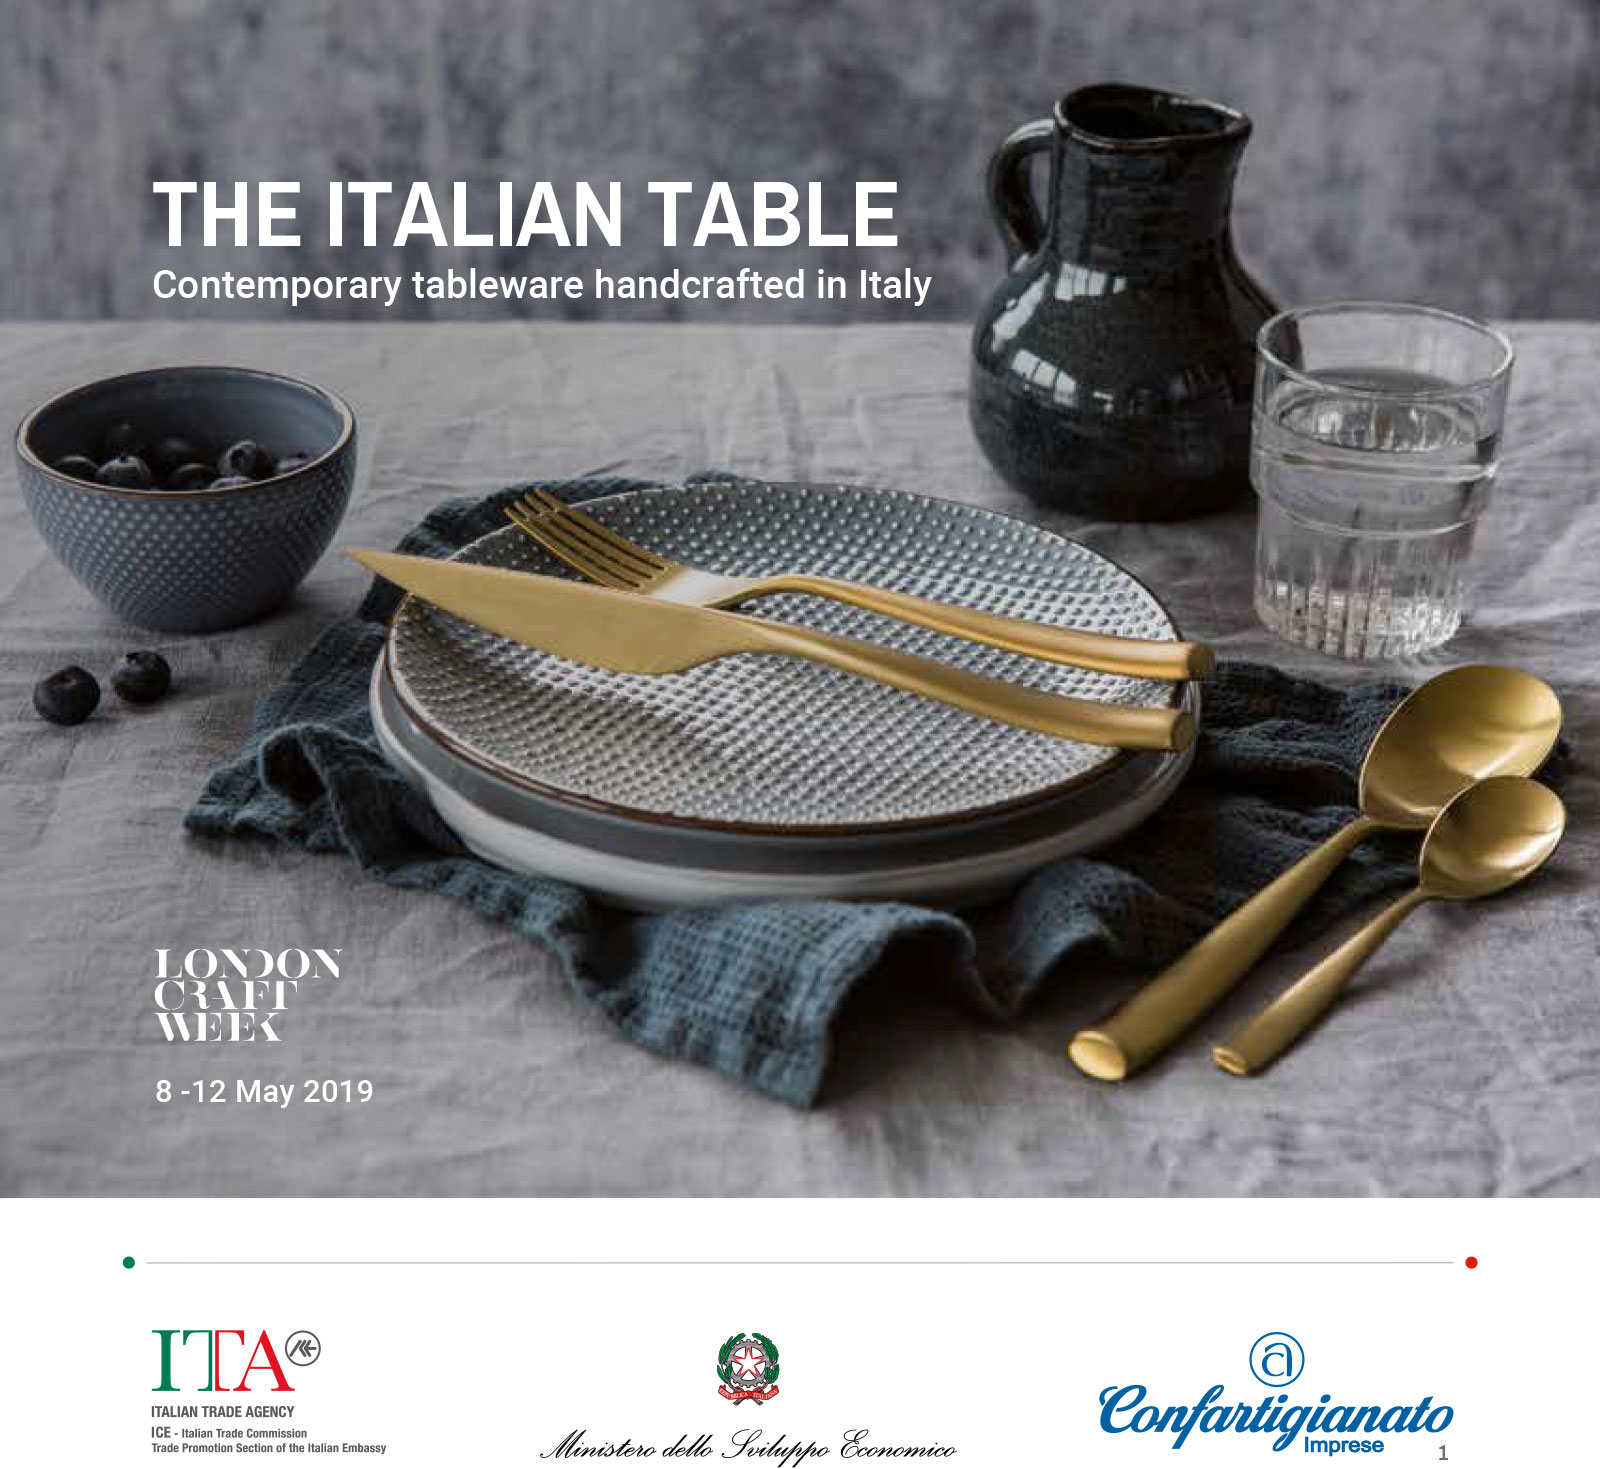 Made a Mano Press- London Craft Week - The Italian Table